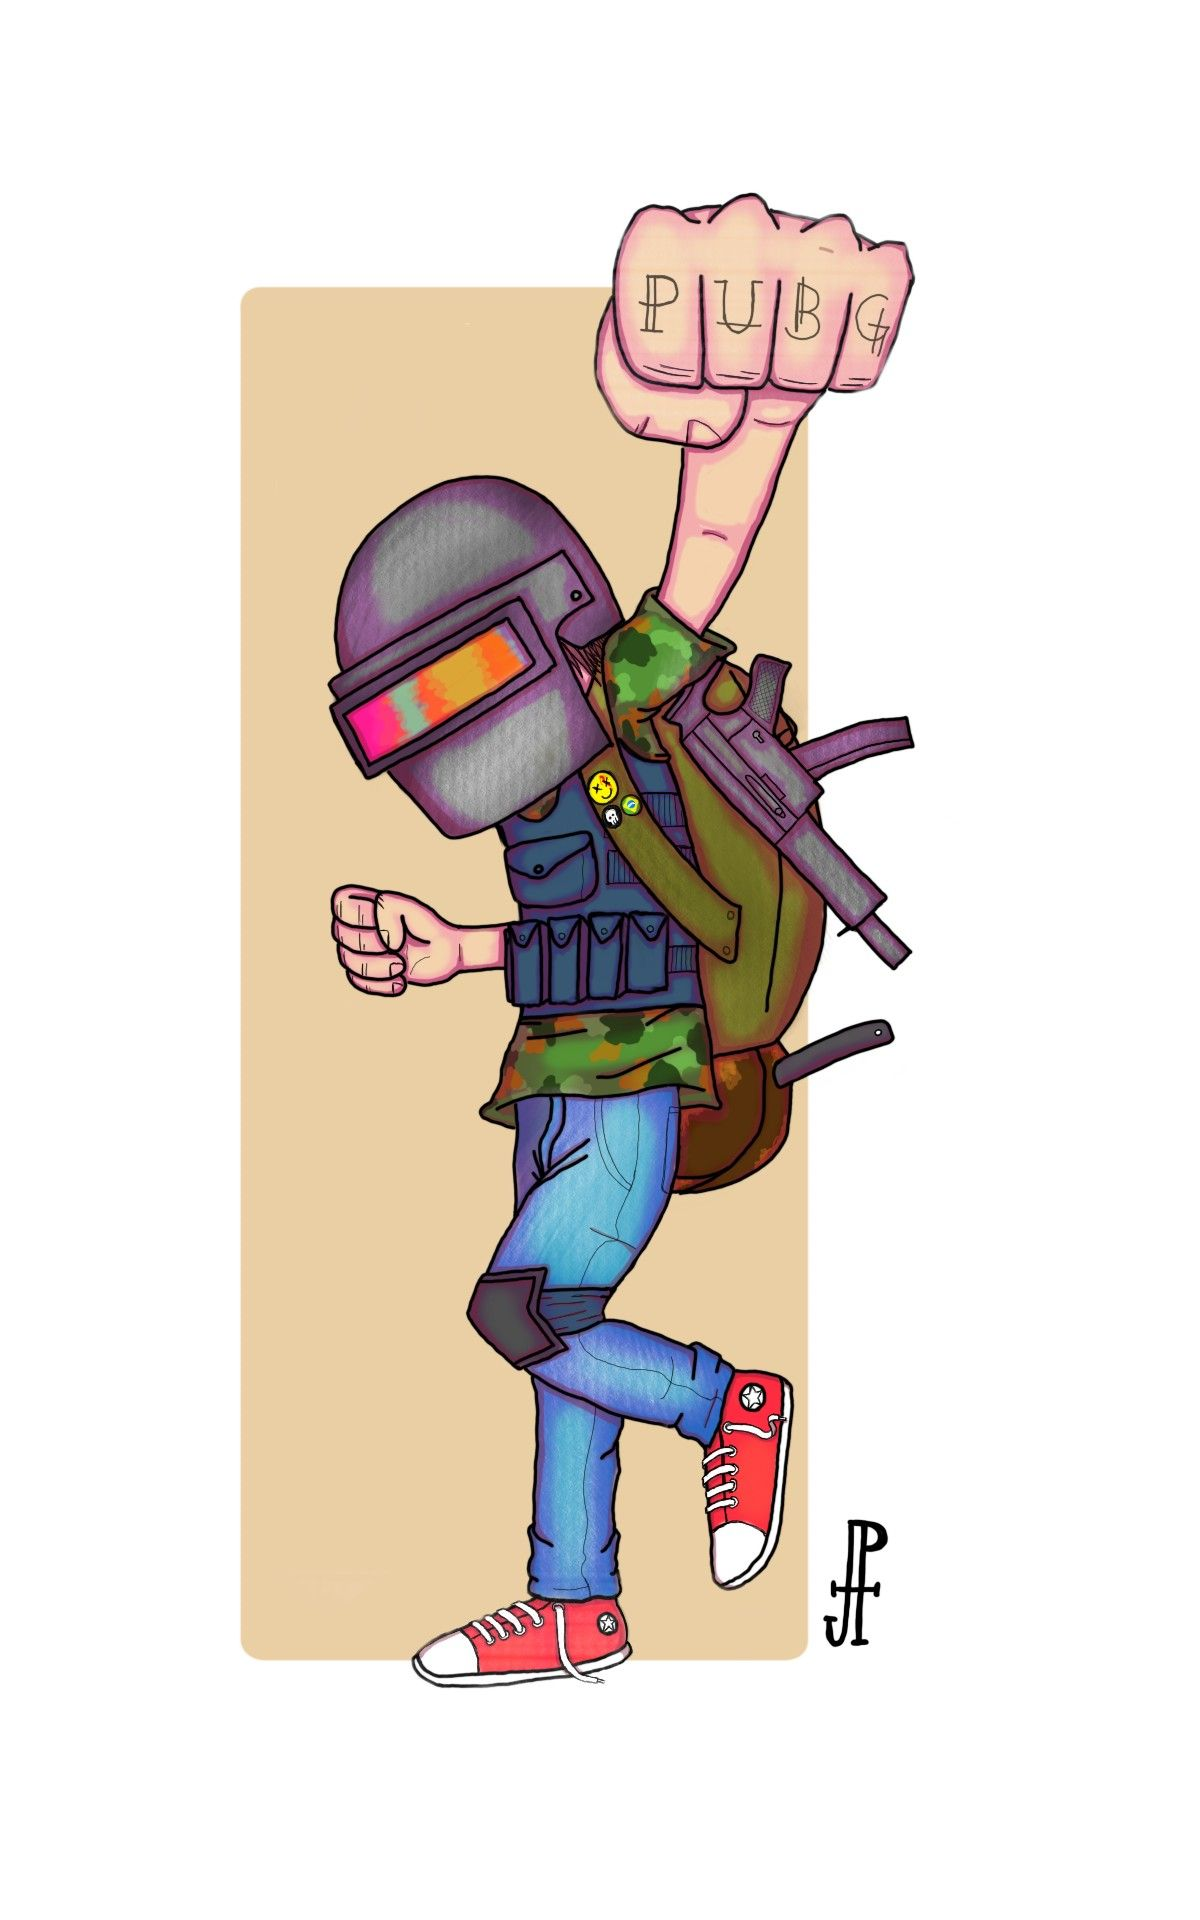 Fanart Do Jogo PUBG. #MoreArtLessCopy | Pubg | Pinterest | Fanart Gaming And Infinity War